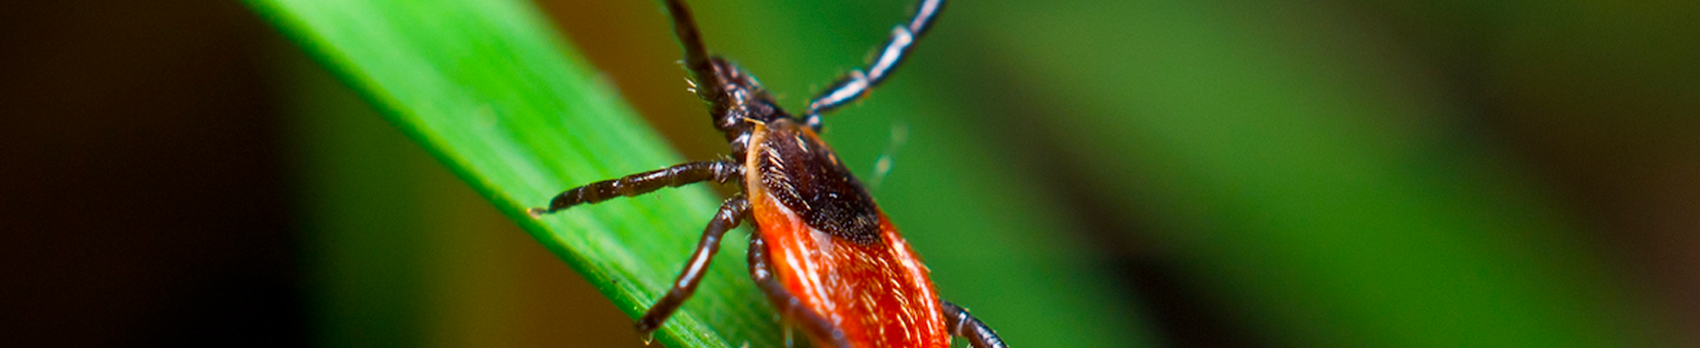 Ticks Common in VA – Blacklegged (Deer) Tick